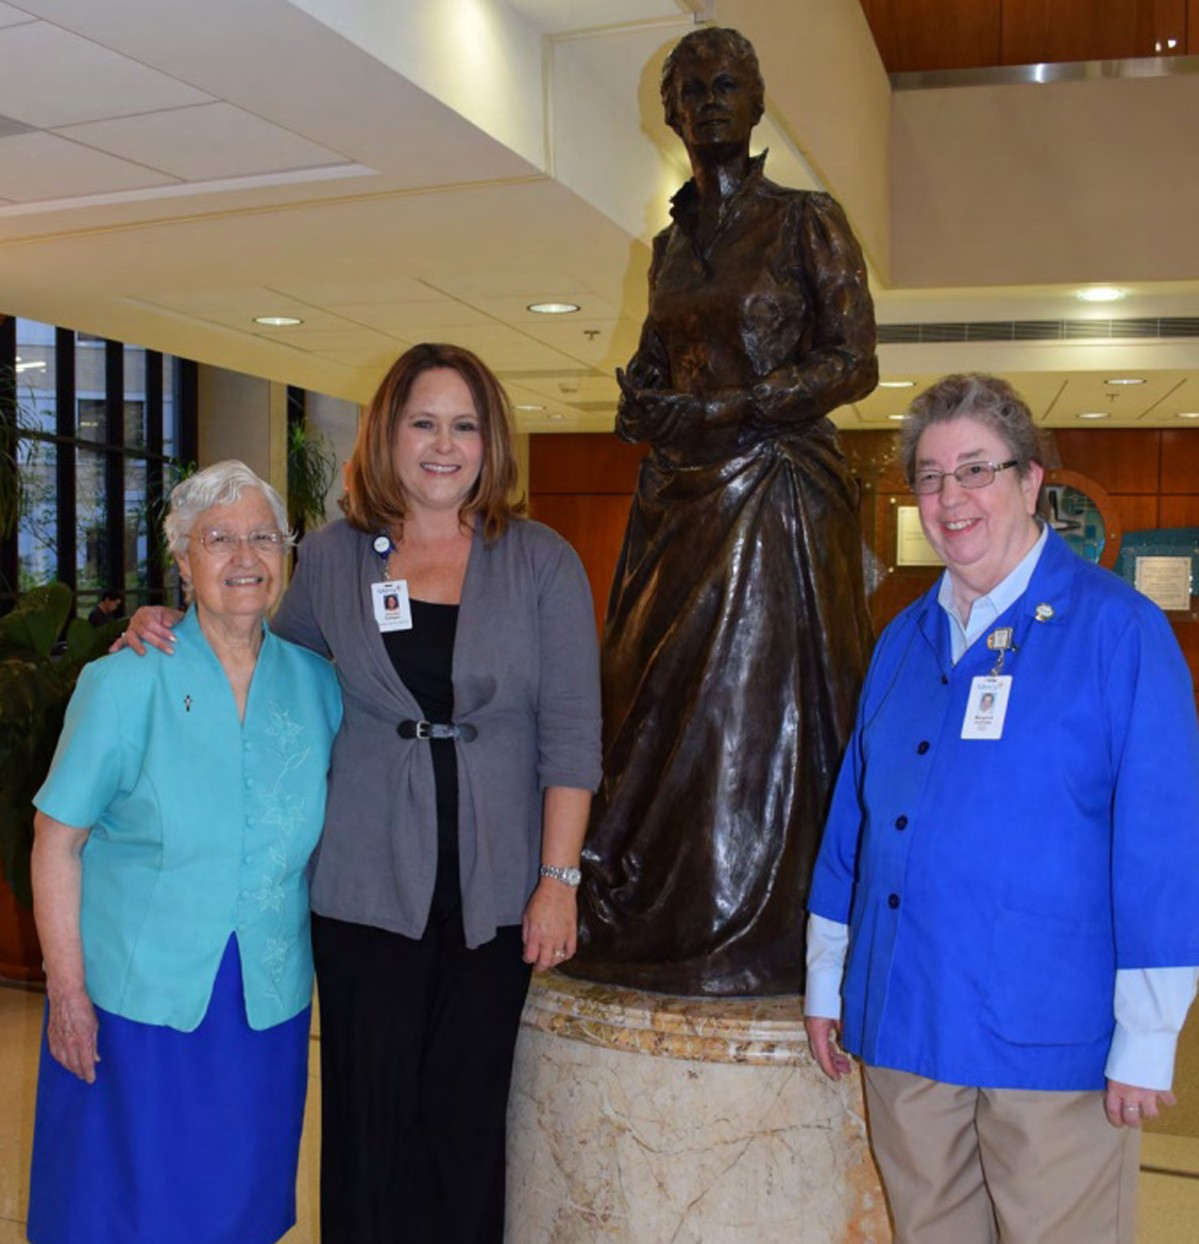 Shown at right: (Center) Jennifer Battagler, director of volunteer services, joins Sister Carmen Gonzalez (left) and Sister Margaret Andrews at the statue of Catherine McAuley in the lobby of Mercy Hospital Springfield.